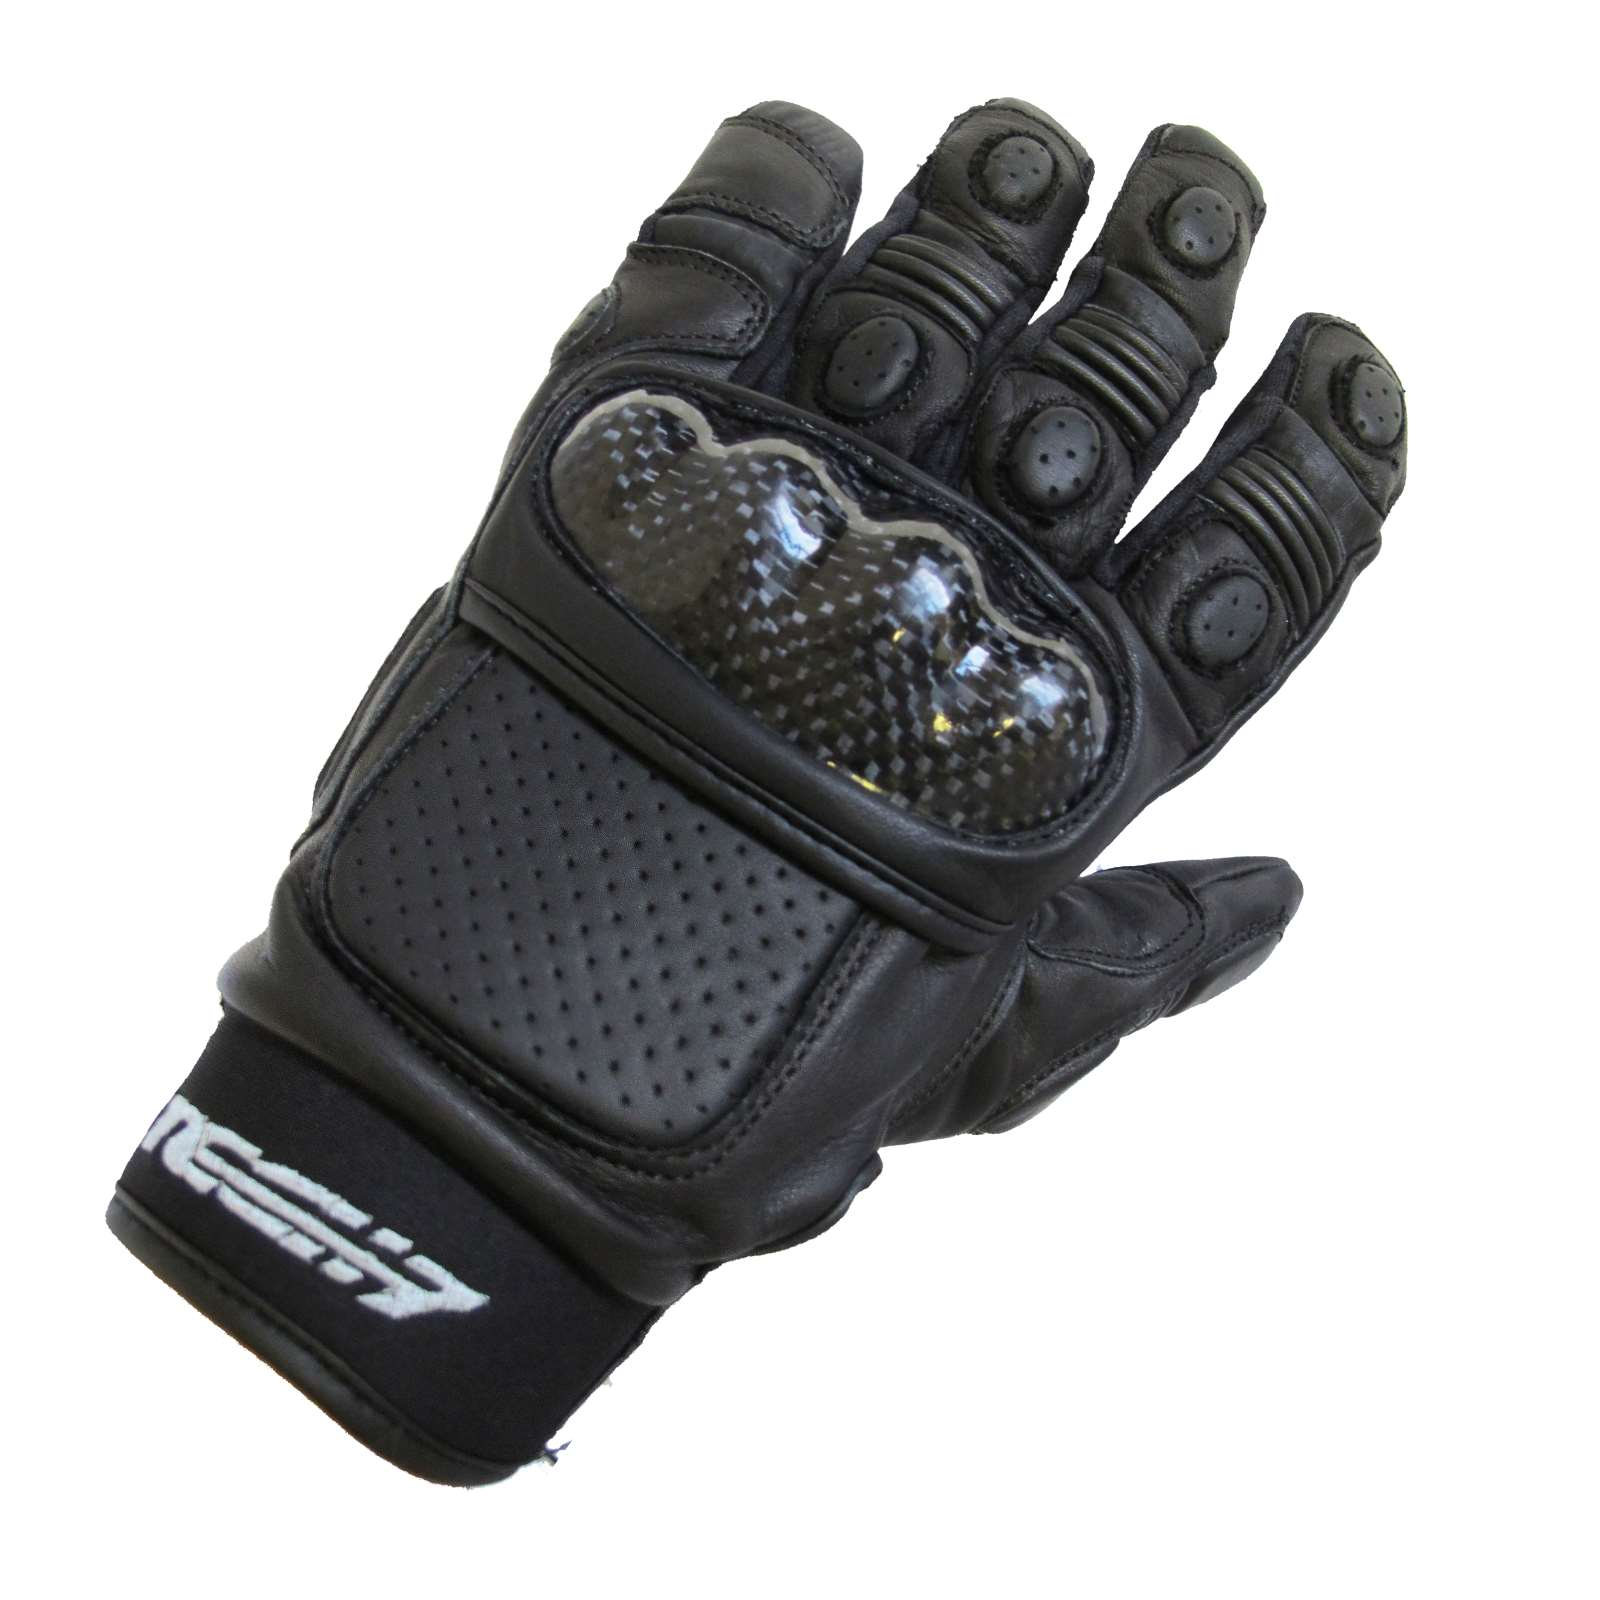 Extra small black leather gloves - Tech 7 Cyber Summer Motorcycle Leather Gloves Black Extra Small Xs